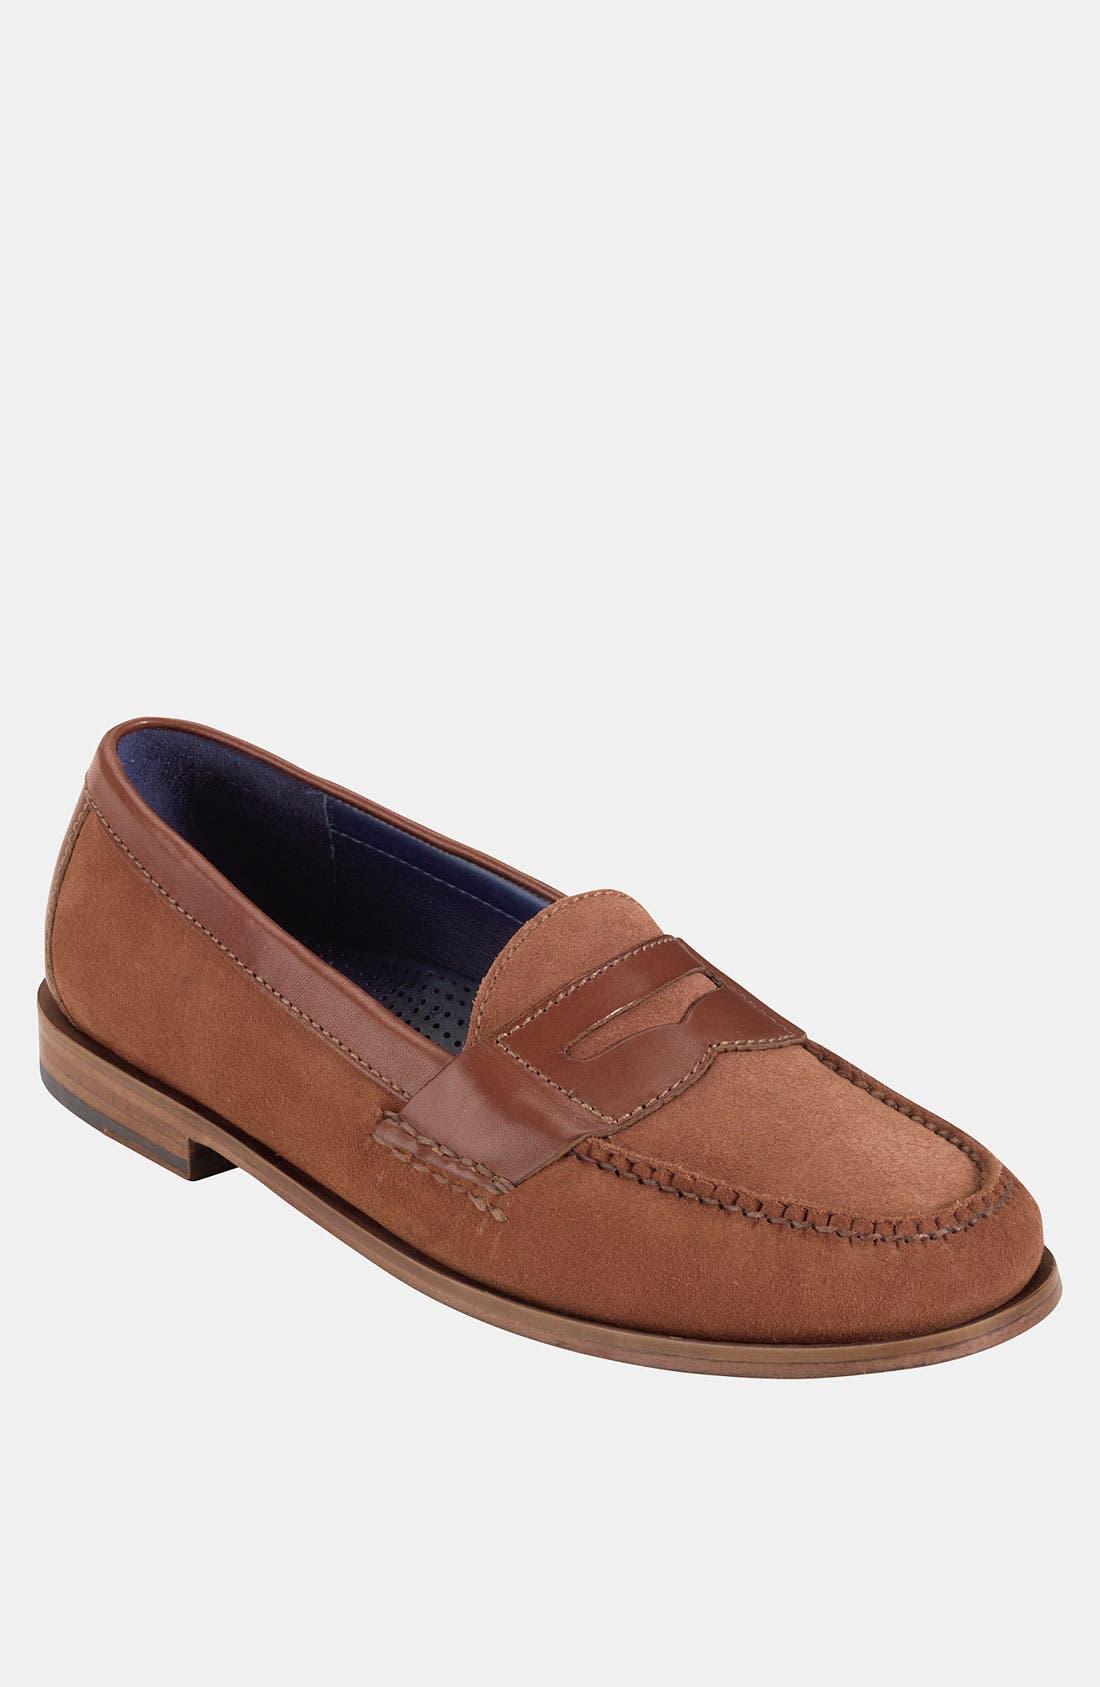 Main Image - Cole Haan 'Pinch' Penny Loafer